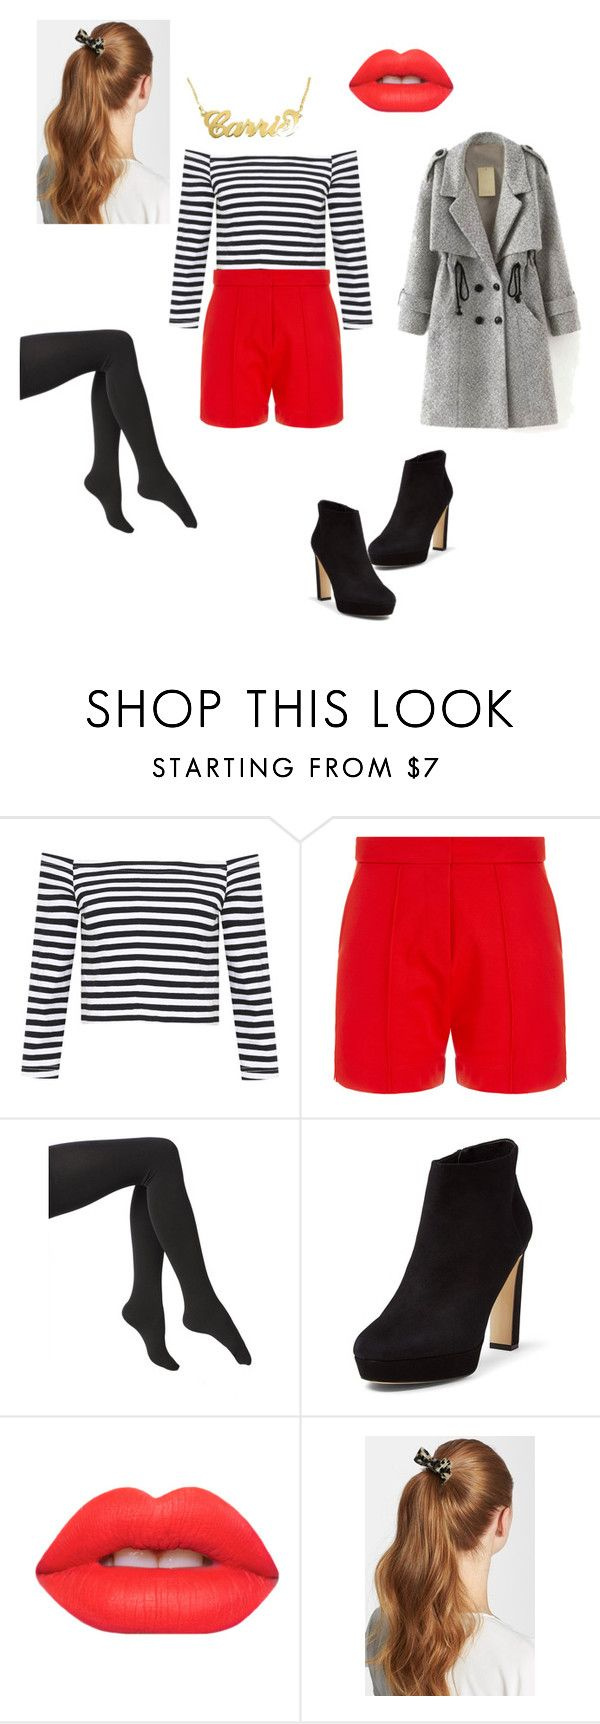 """Red Shorts Outfit"" by debyg on Polyvore featuring Wood Wood, Via Spiga, Diane Von Furstenberg, Lime Crime, L. Erickson, women's clothing, women, female, woman and misses"